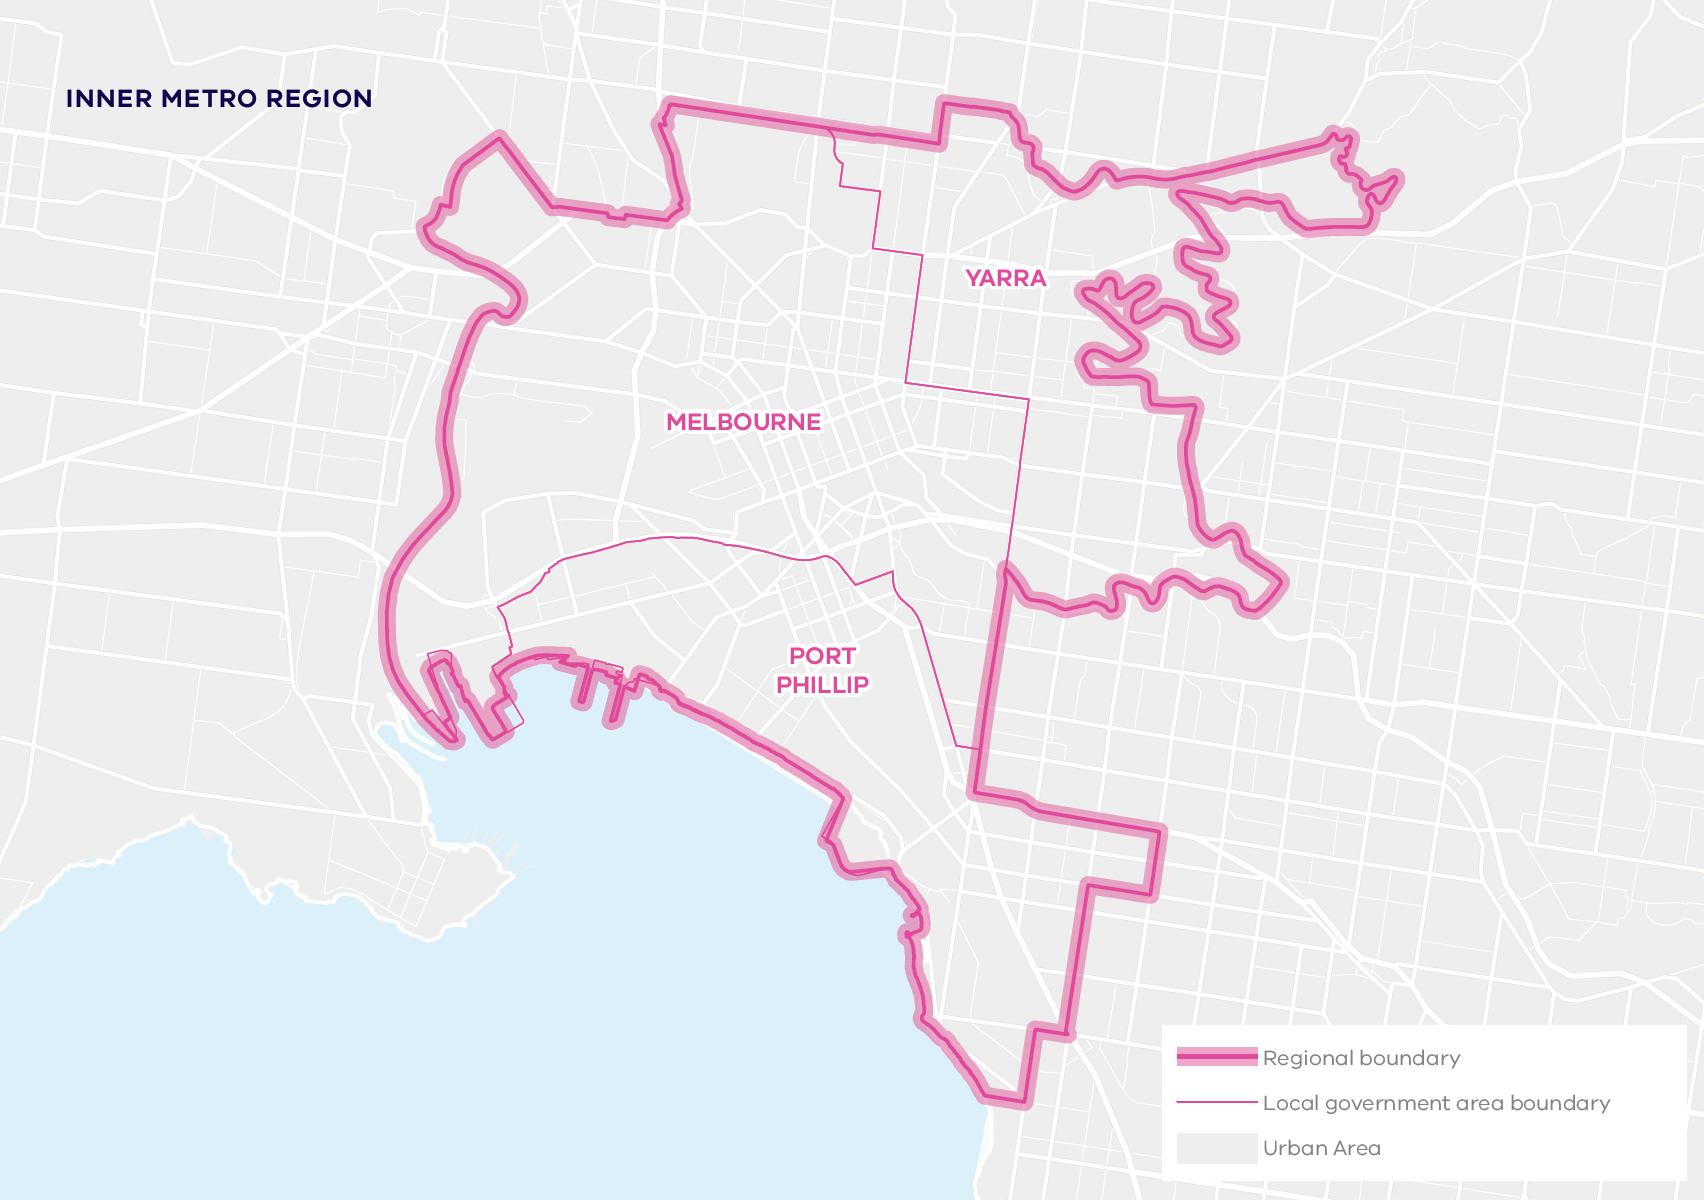 This map shows the boundary for the Inner Metro region and local government areas. The Inner Metro region includes Yarra, Melbourne and Port Phillip local government areas.